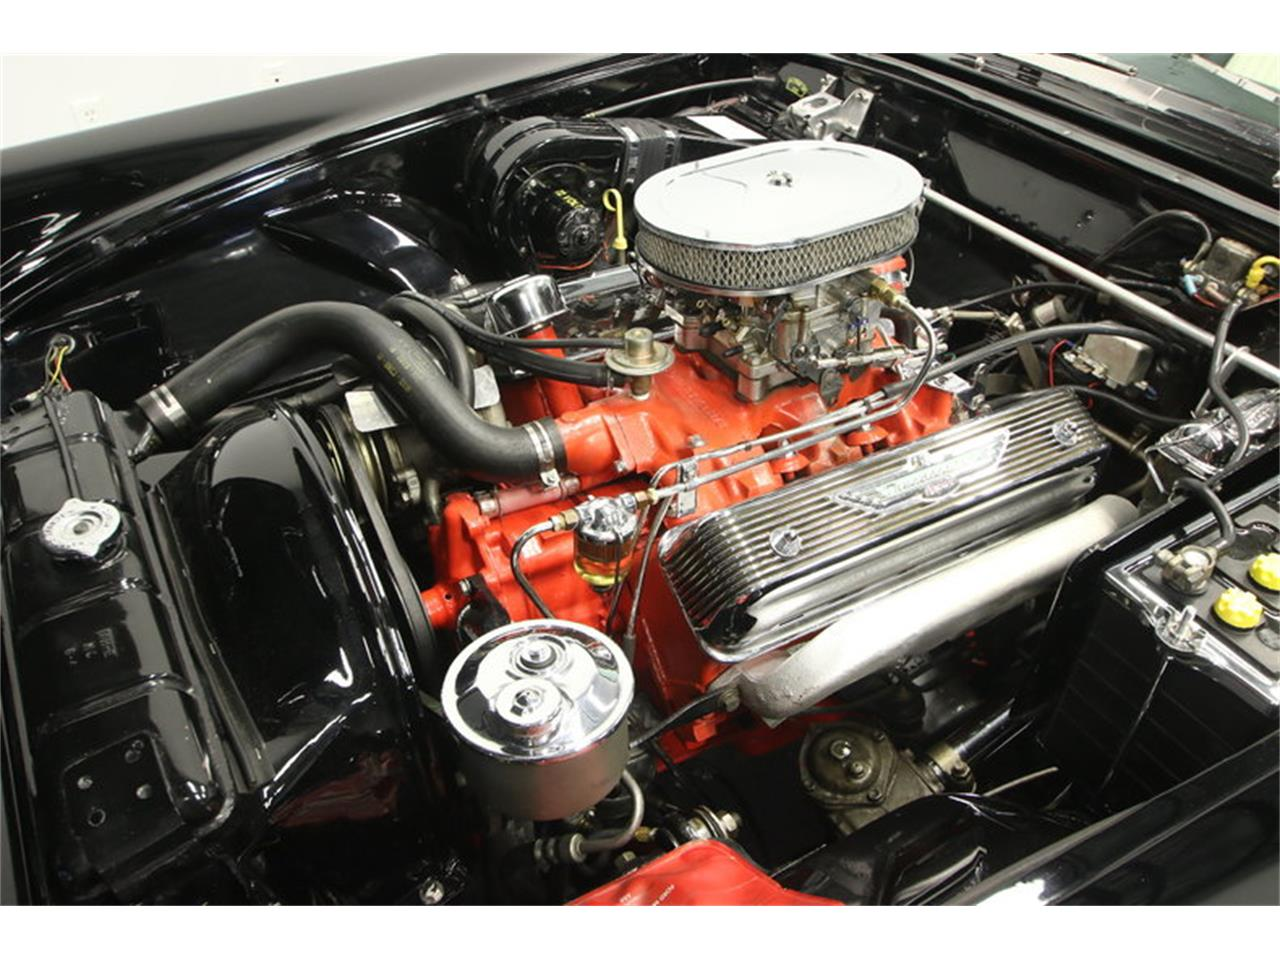 Large Picture of '56 Ford Thunderbird located in Lutz Florida - $59,995.00 Offered by Streetside Classics - Tampa - LEBI